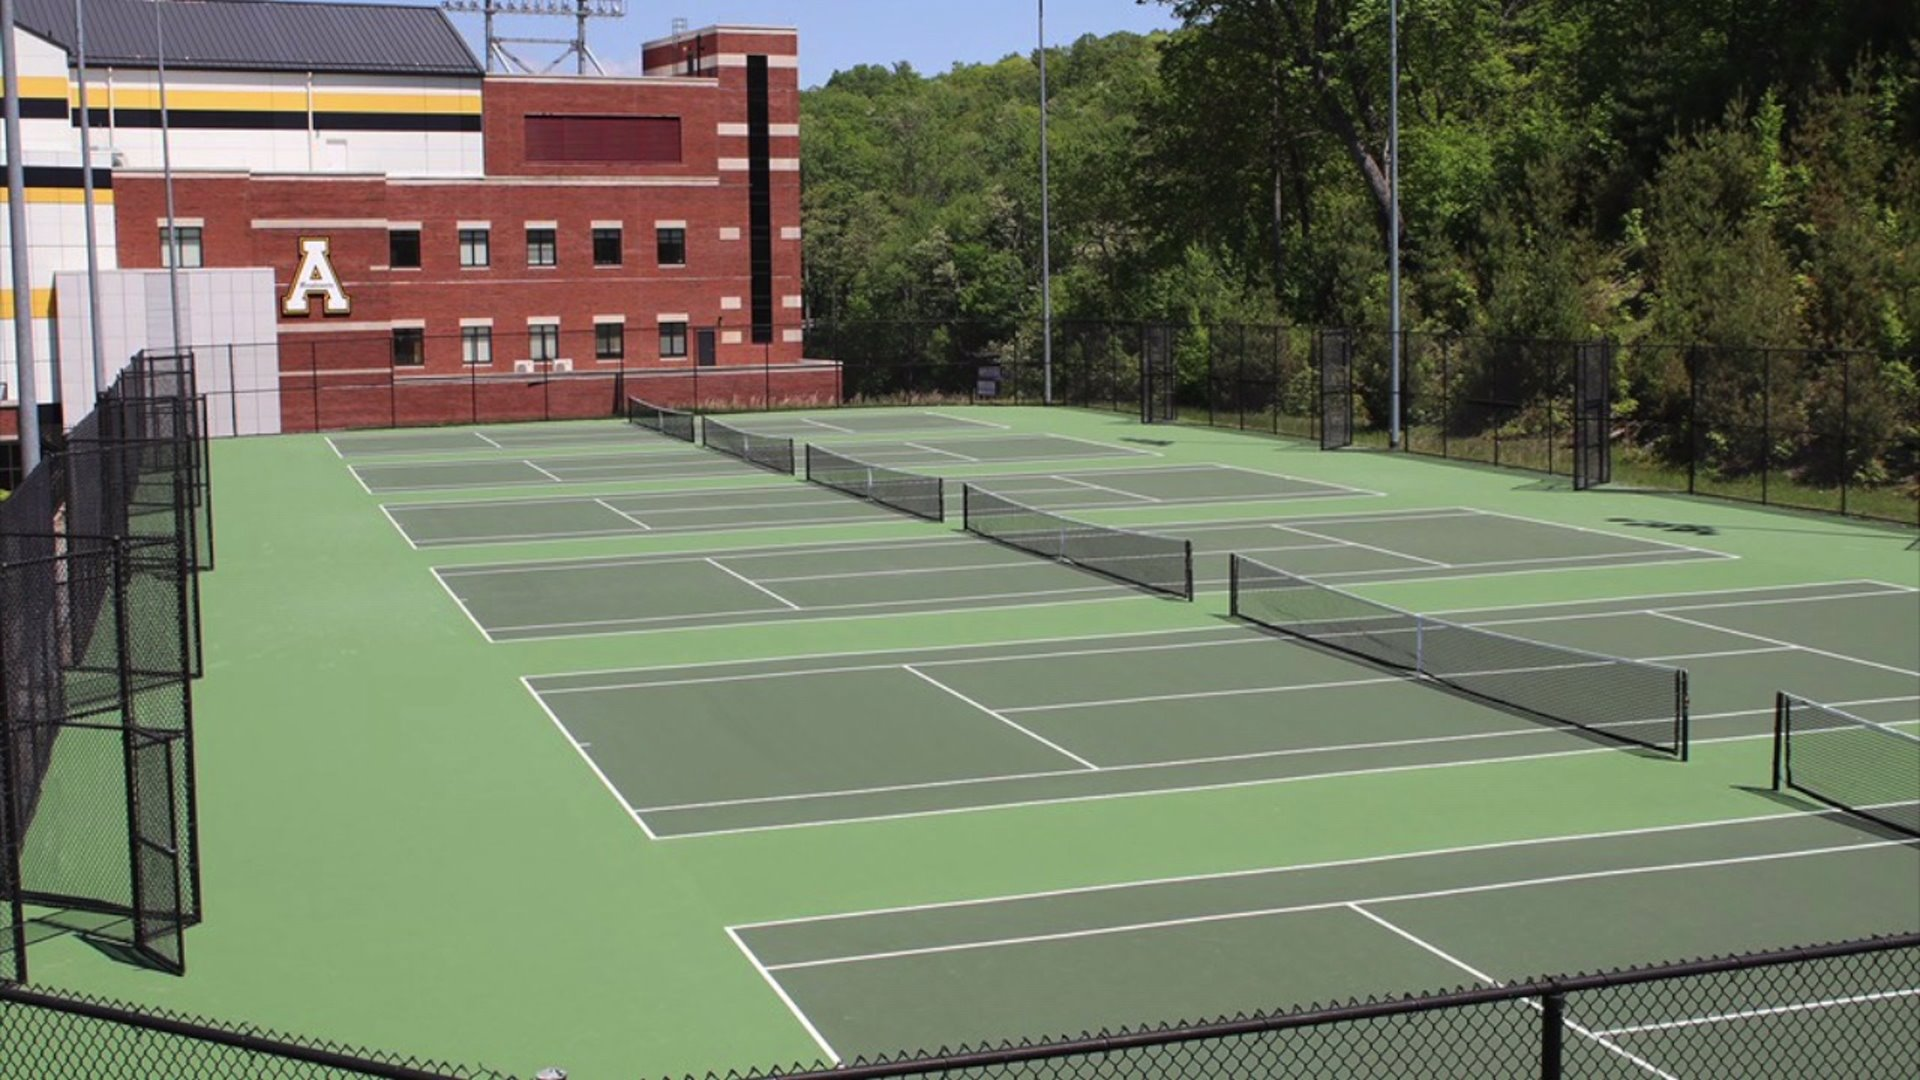 Appalachian State tennis courts (WGHP file photo)